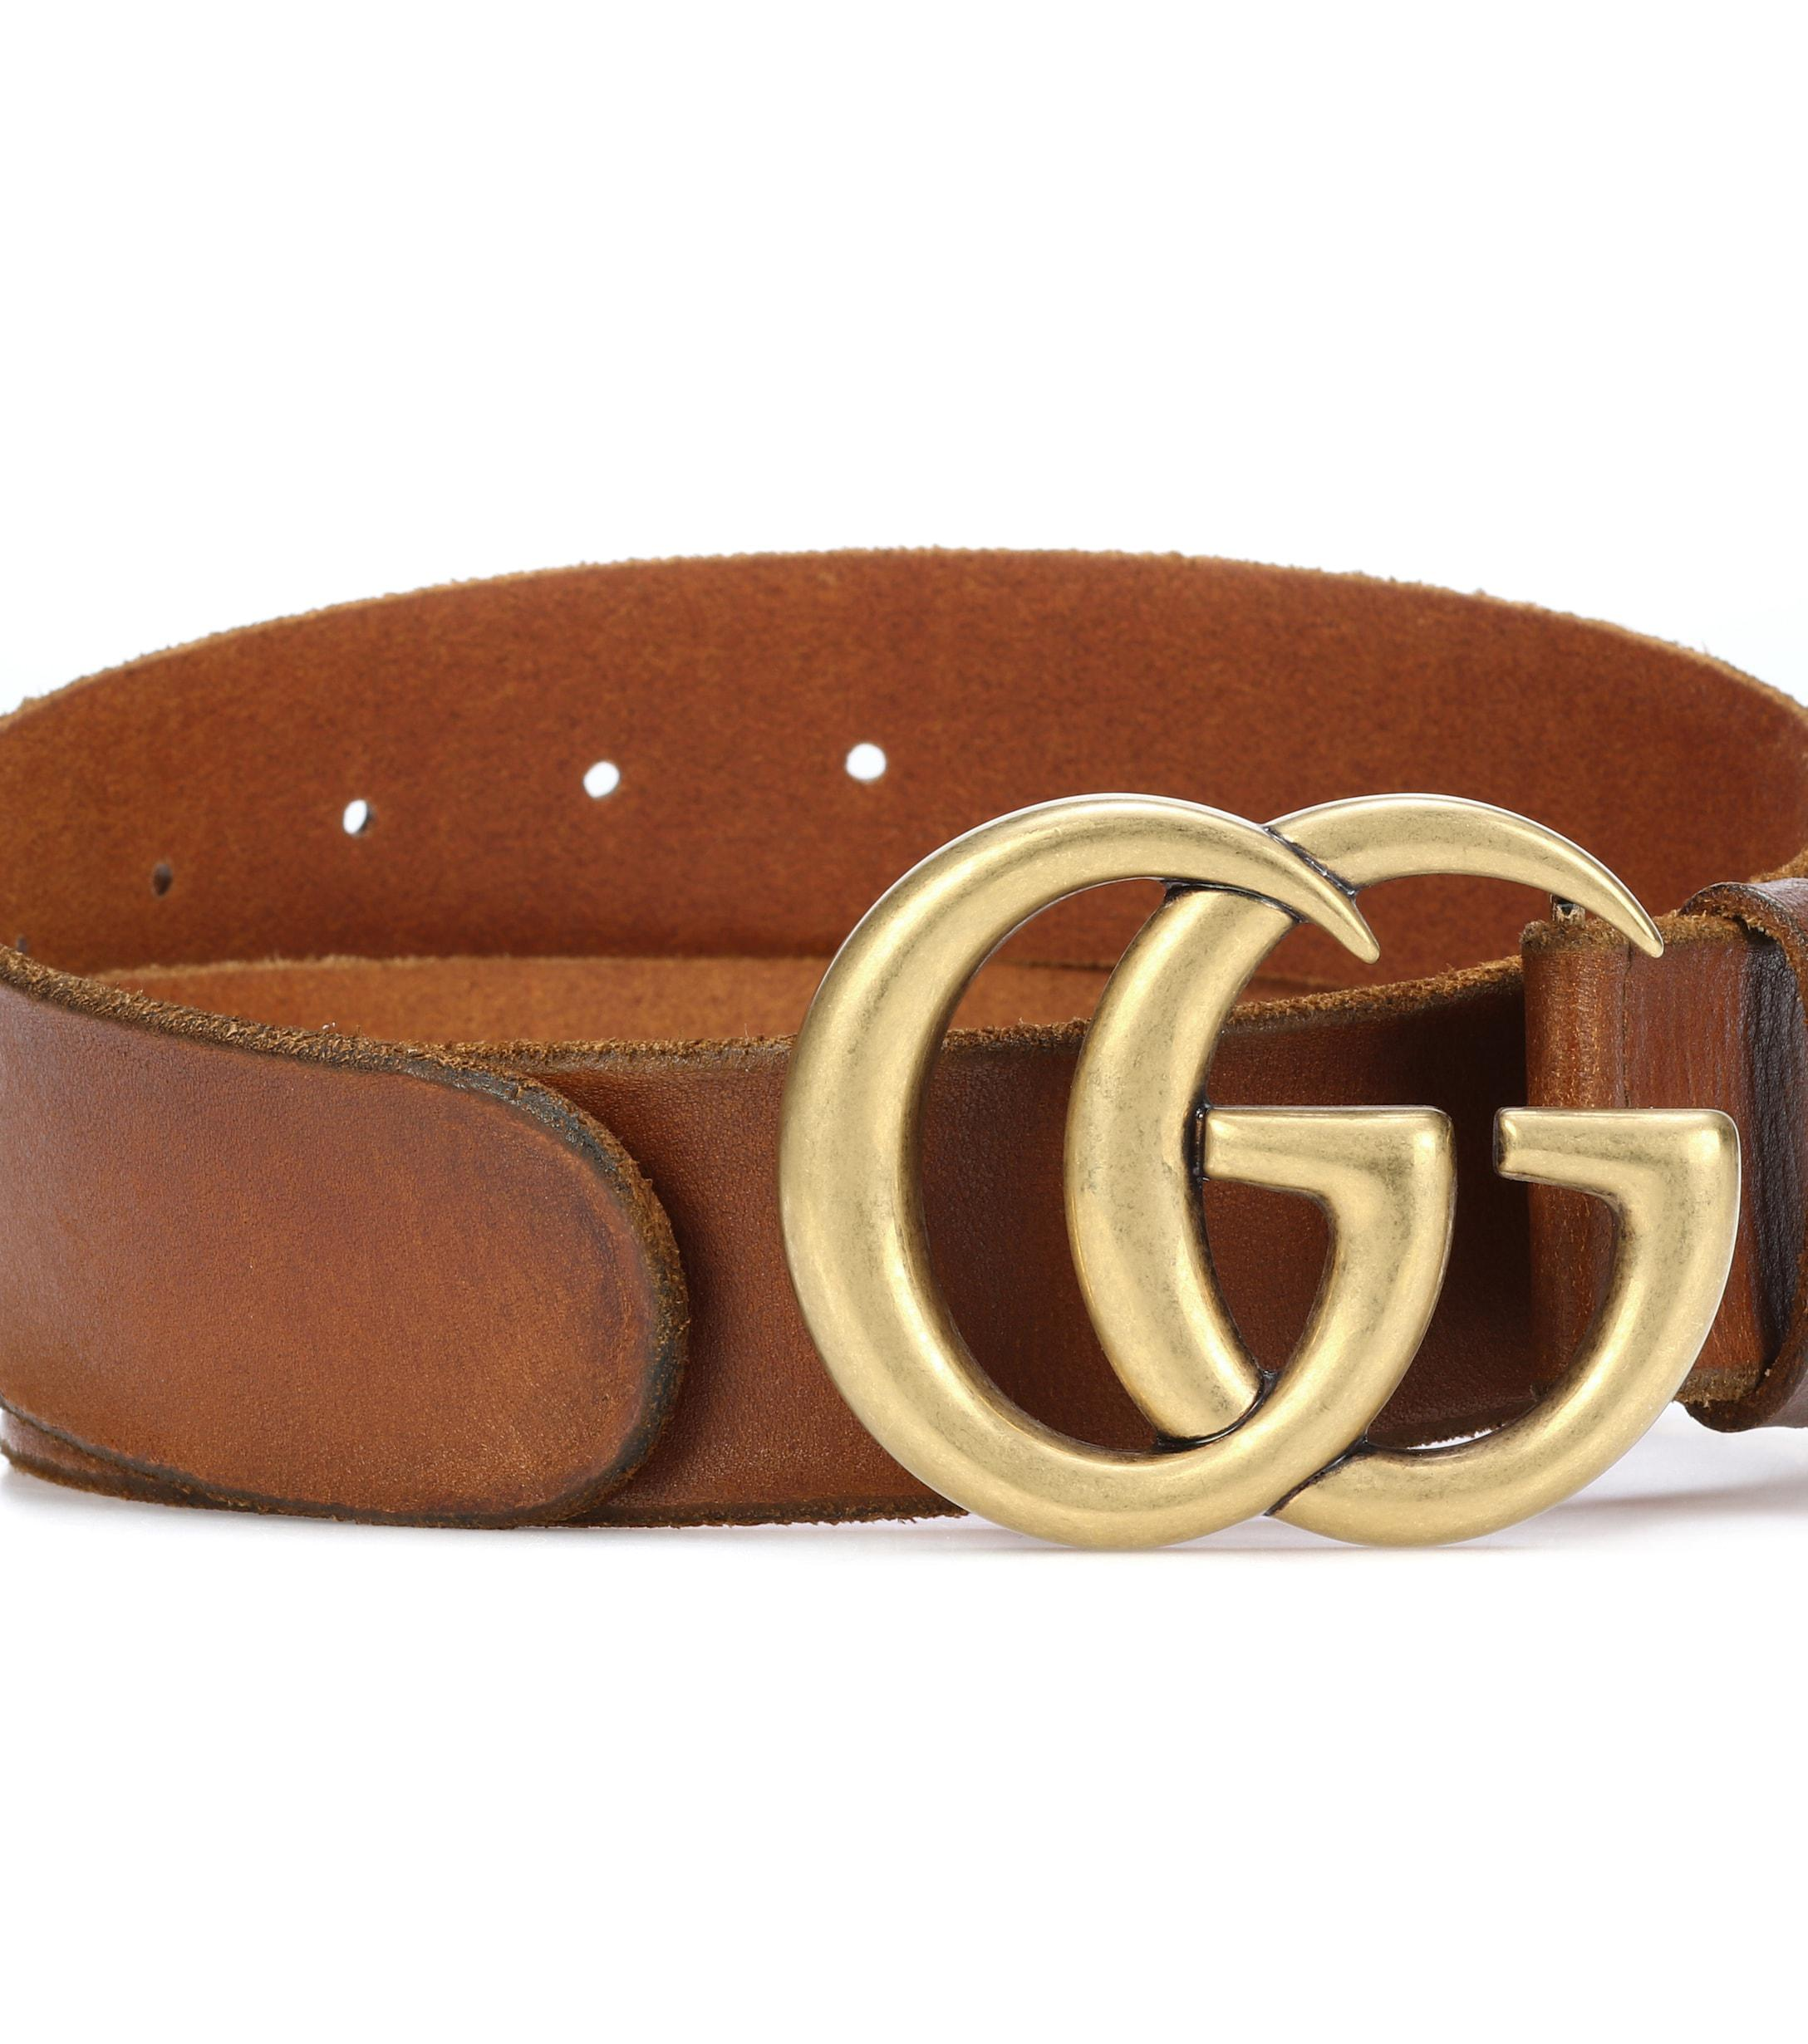 63118a1bafd Gucci - Brown Embellished Leather Belt - Lyst. View fullscreen